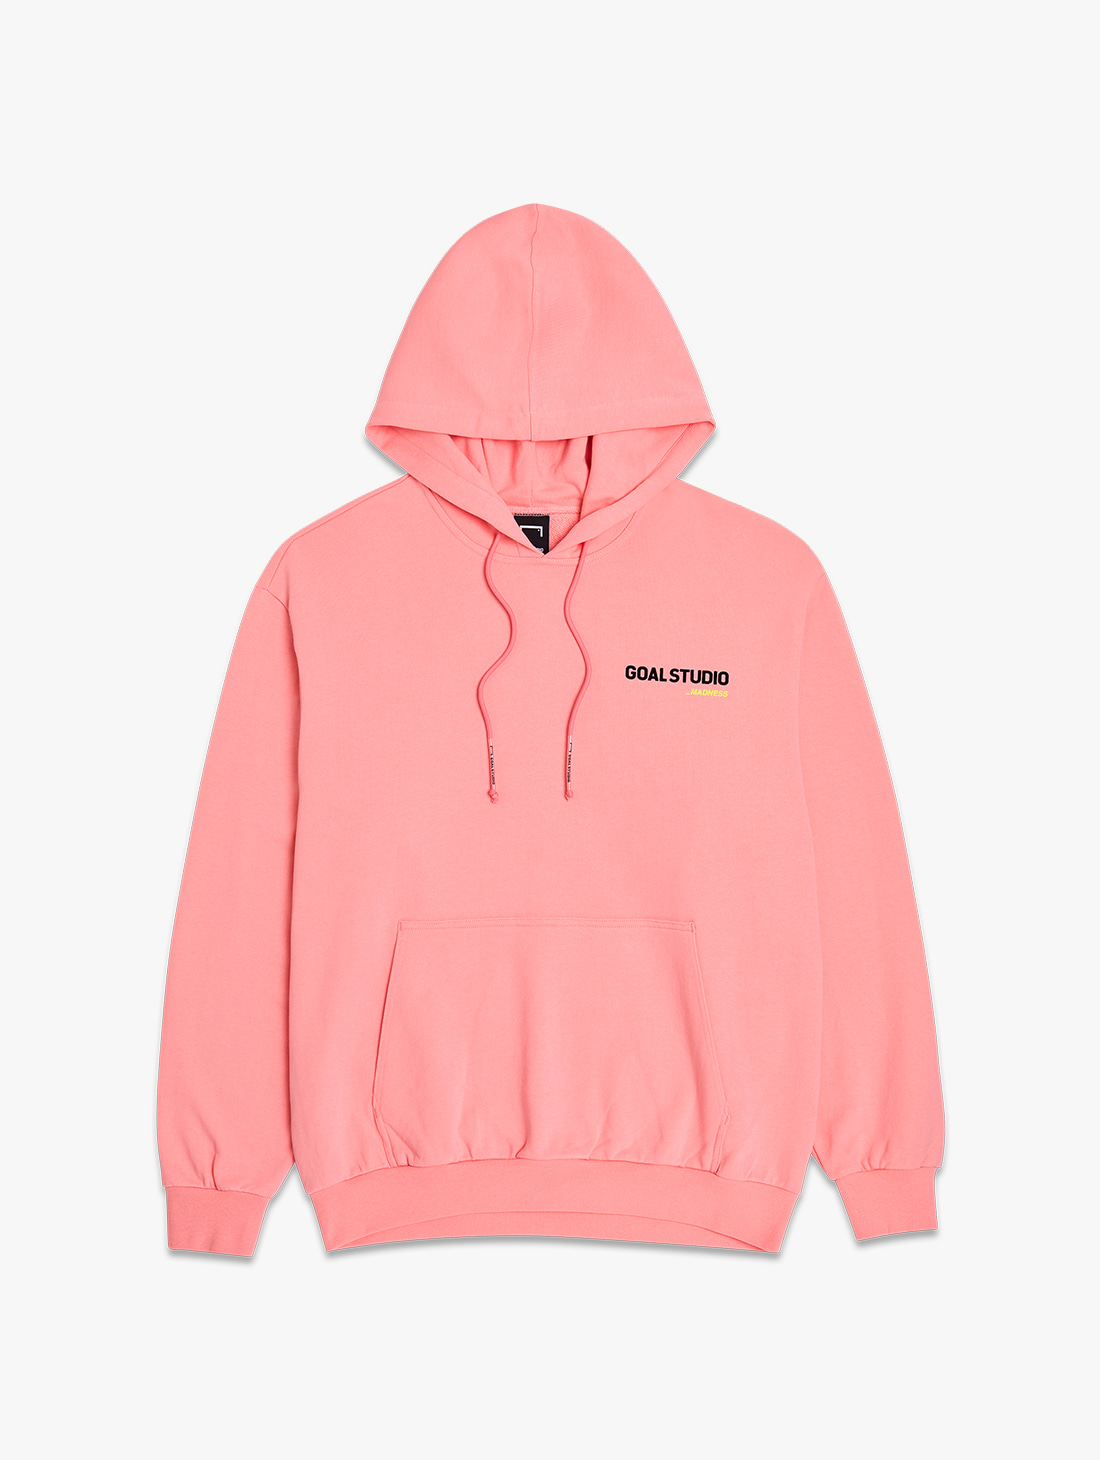 GOALSTUDIO MADNESS HOODIE (3 Colors)